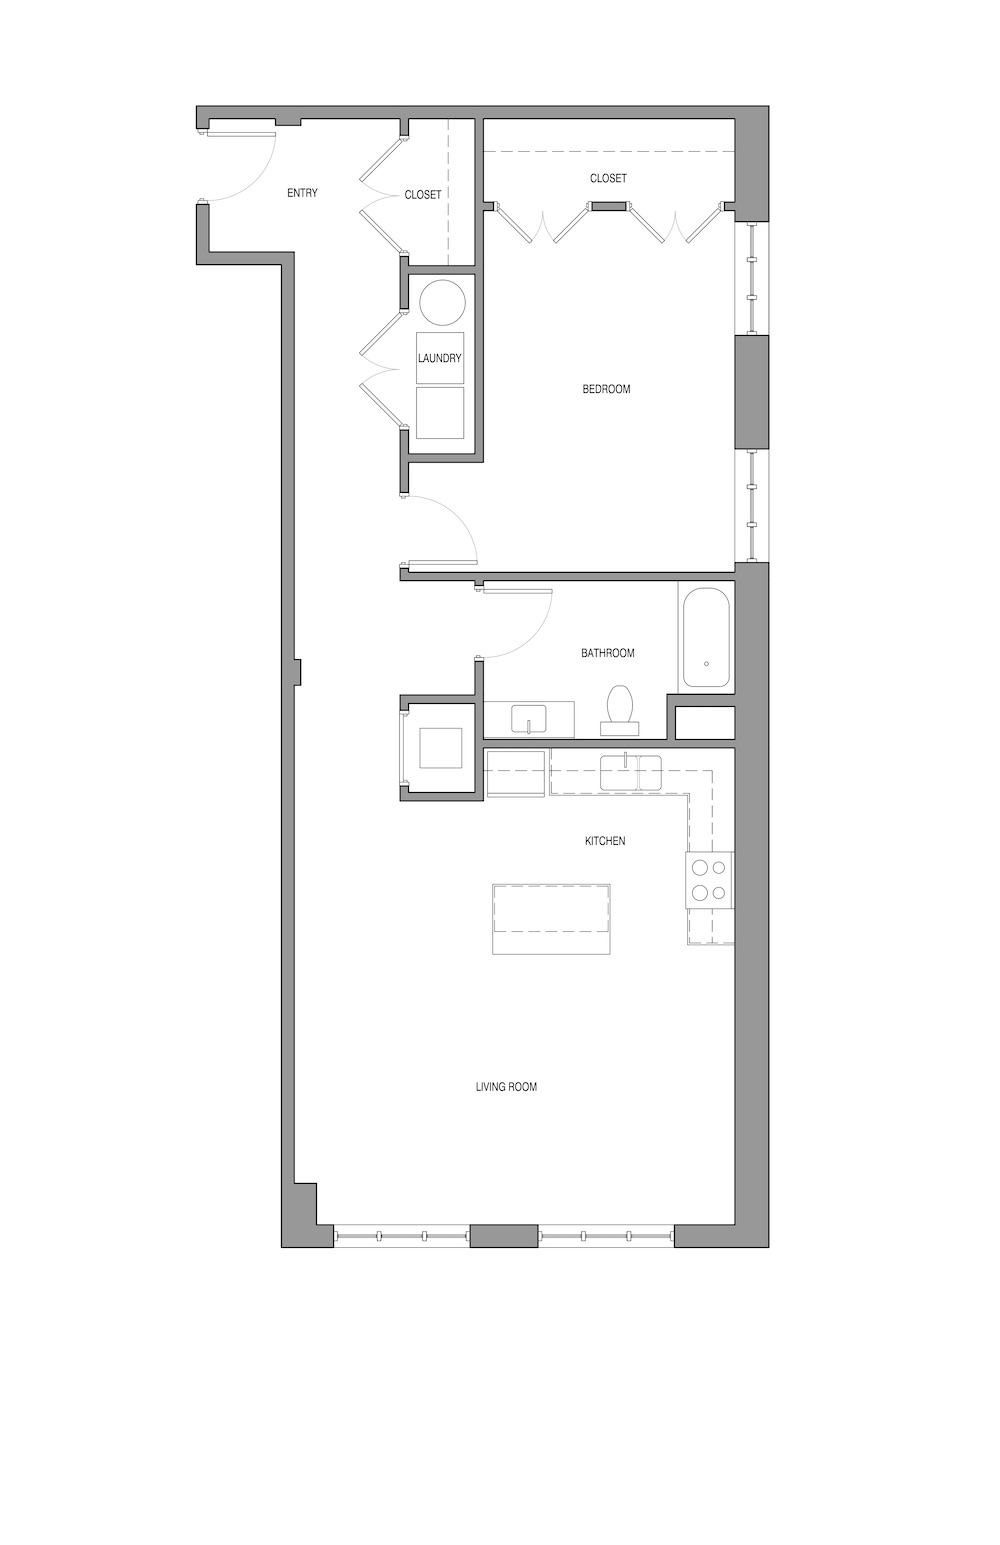 Stables Lofts Floor Plan